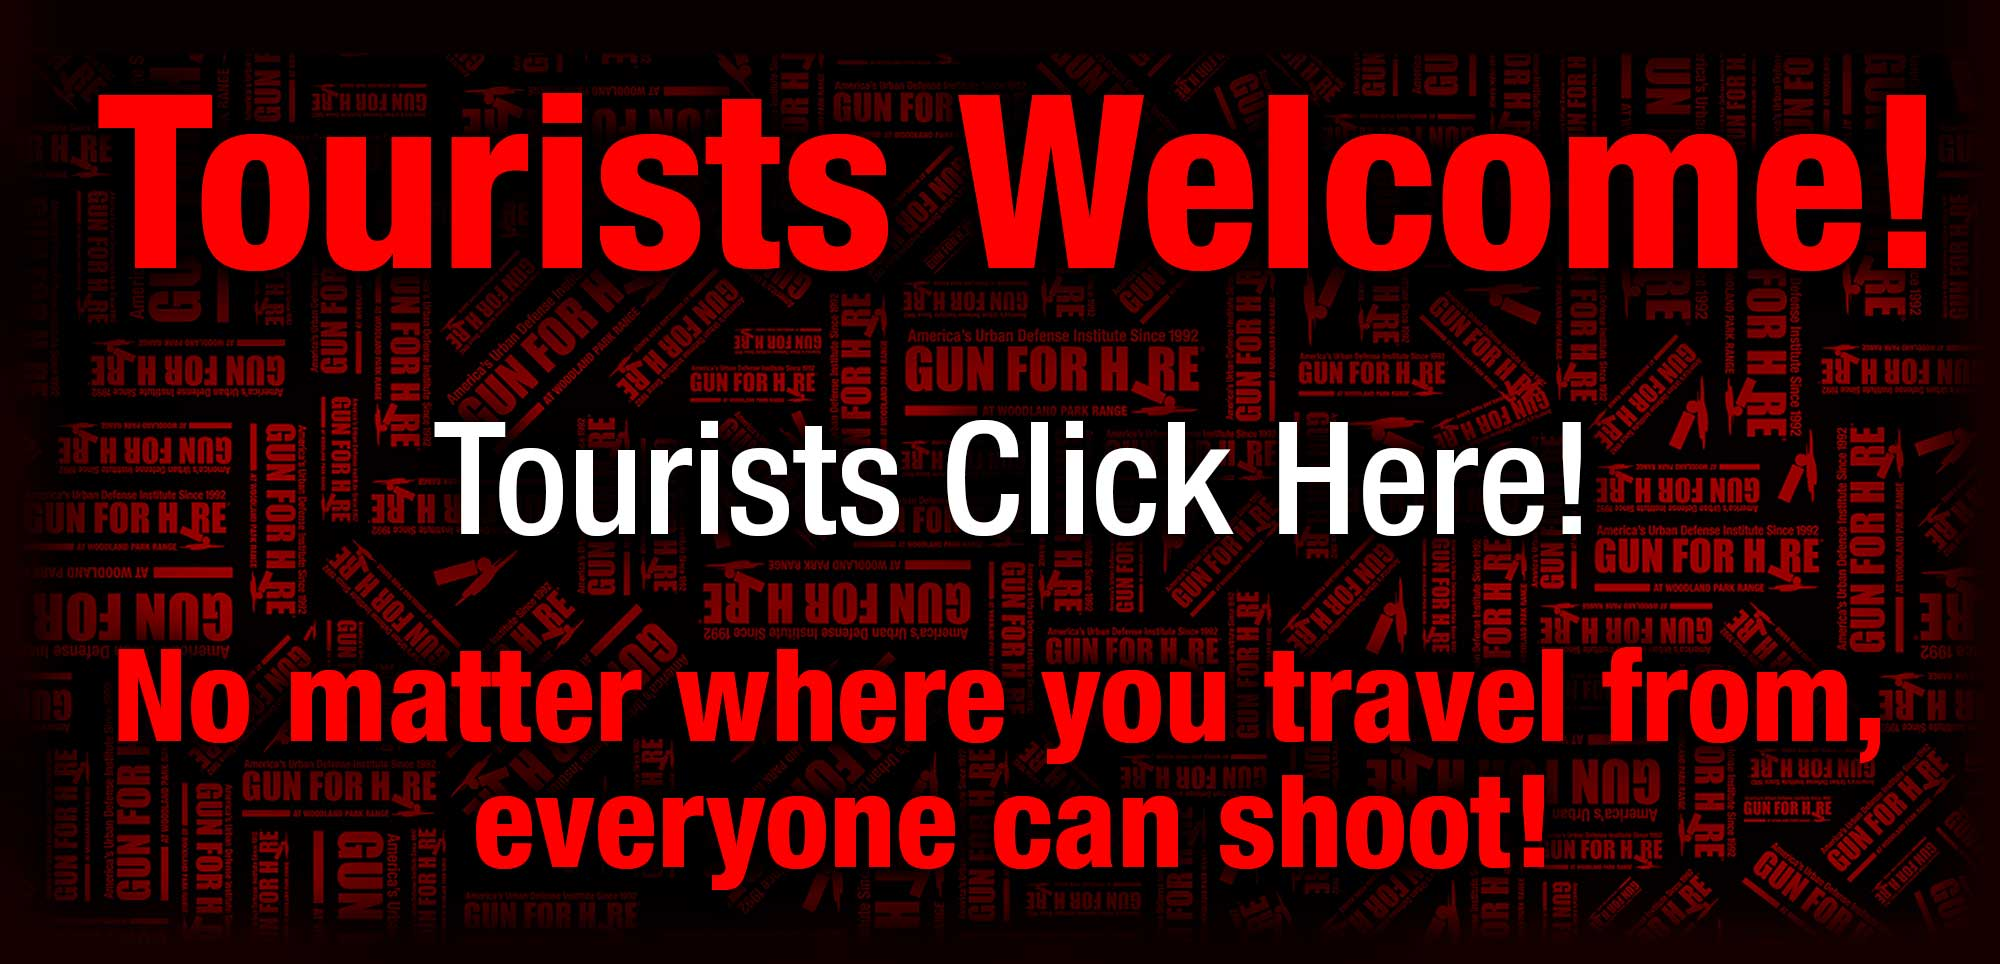 Welcome Tourist 1 - Who Can Shoot?